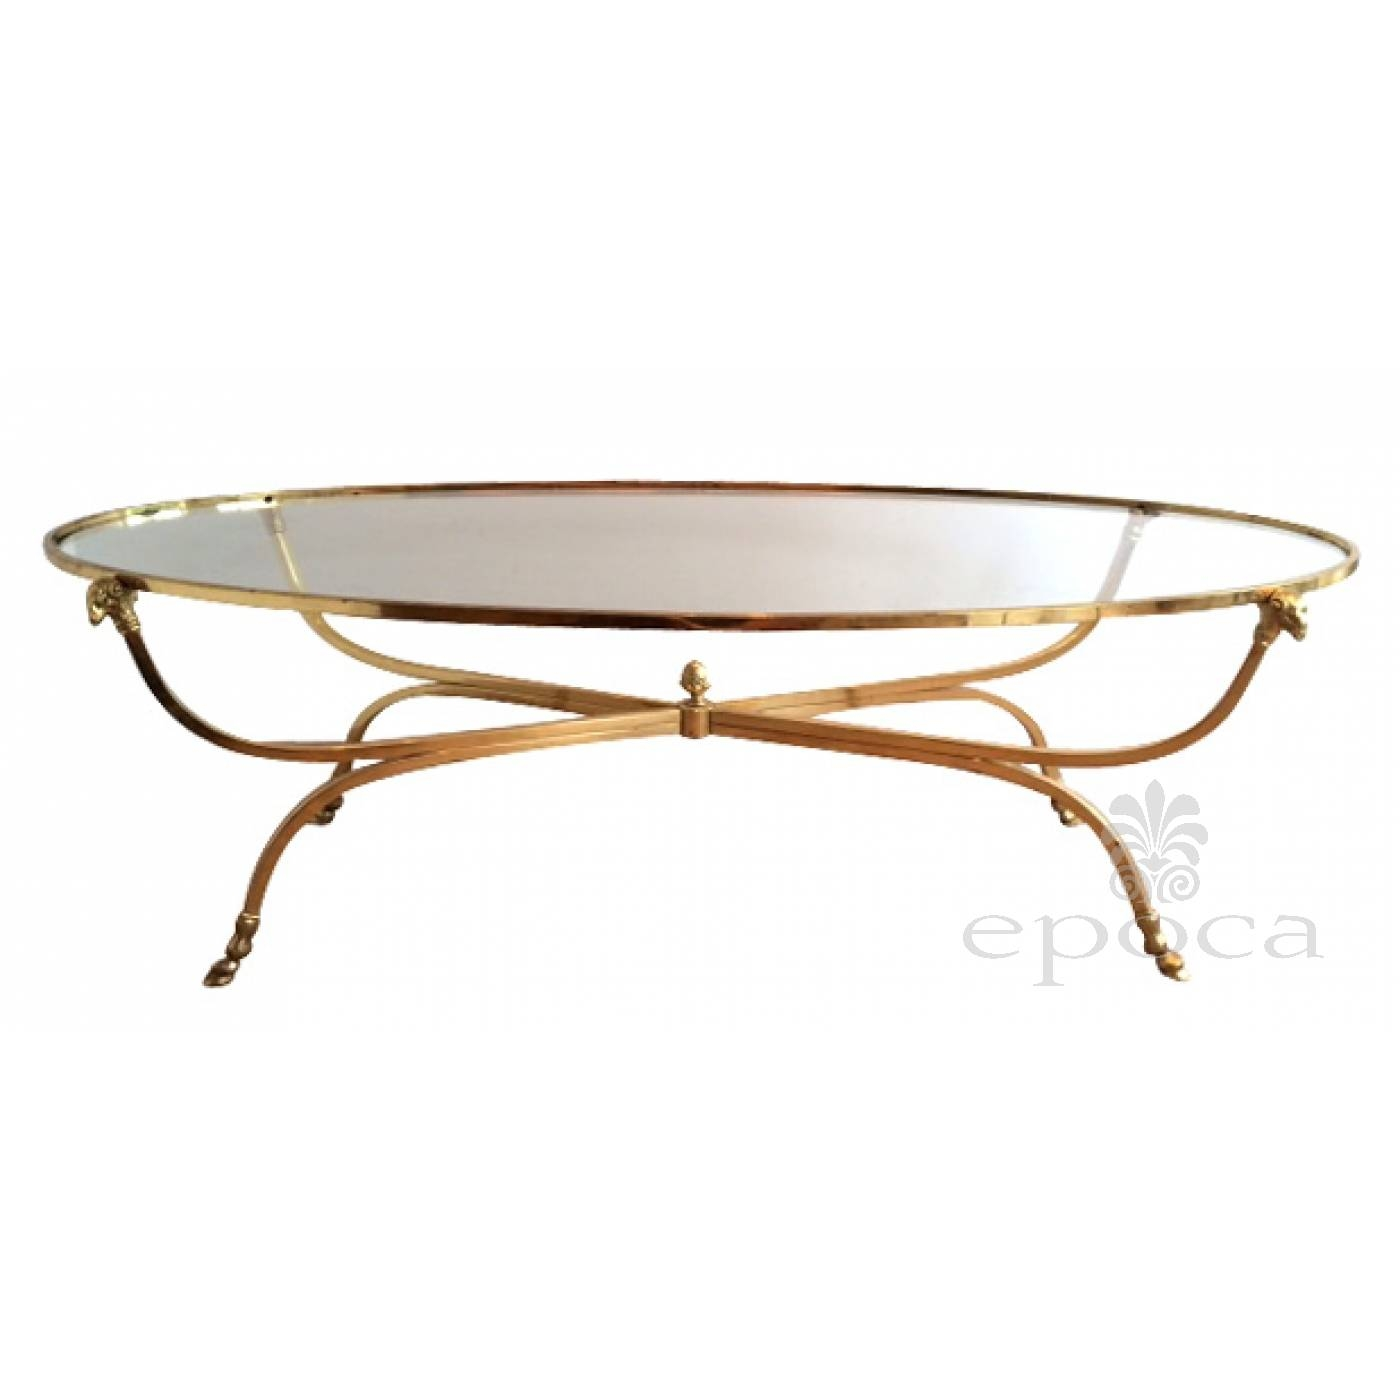 Antique French Glass Top Coffee Tables | Coffee Tables Decoration inside Antique Glass Top Coffee Tables (Image 5 of 30)